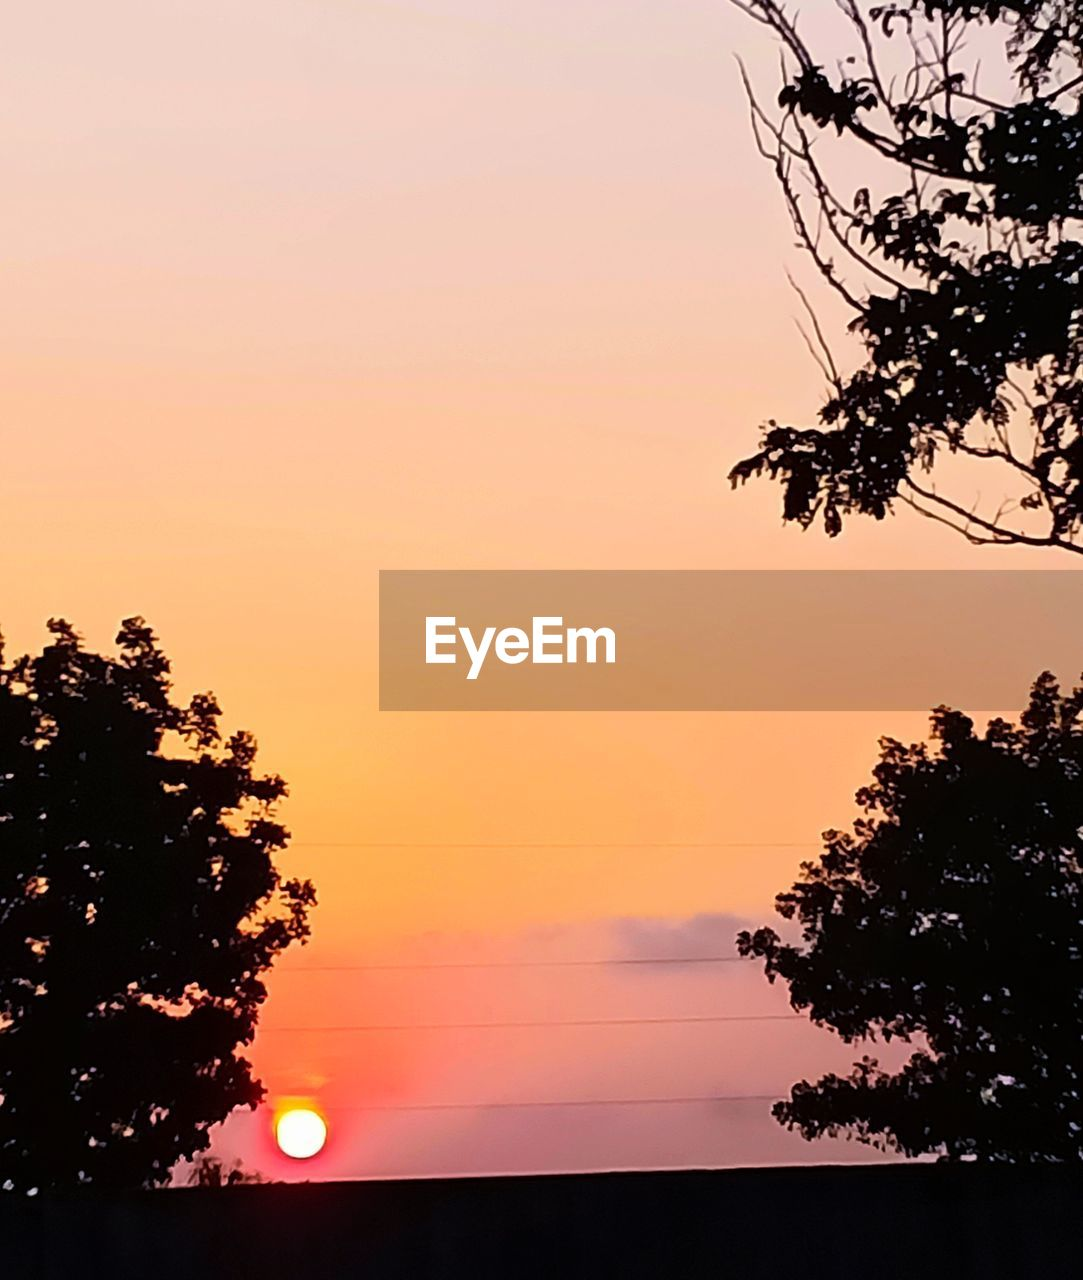 sunset, sky, tree, silhouette, plant, orange color, beauty in nature, scenics - nature, tranquility, tranquil scene, nature, idyllic, no people, growth, branch, non-urban scene, outdoors, low angle view, clear sky, sun, romantic sky